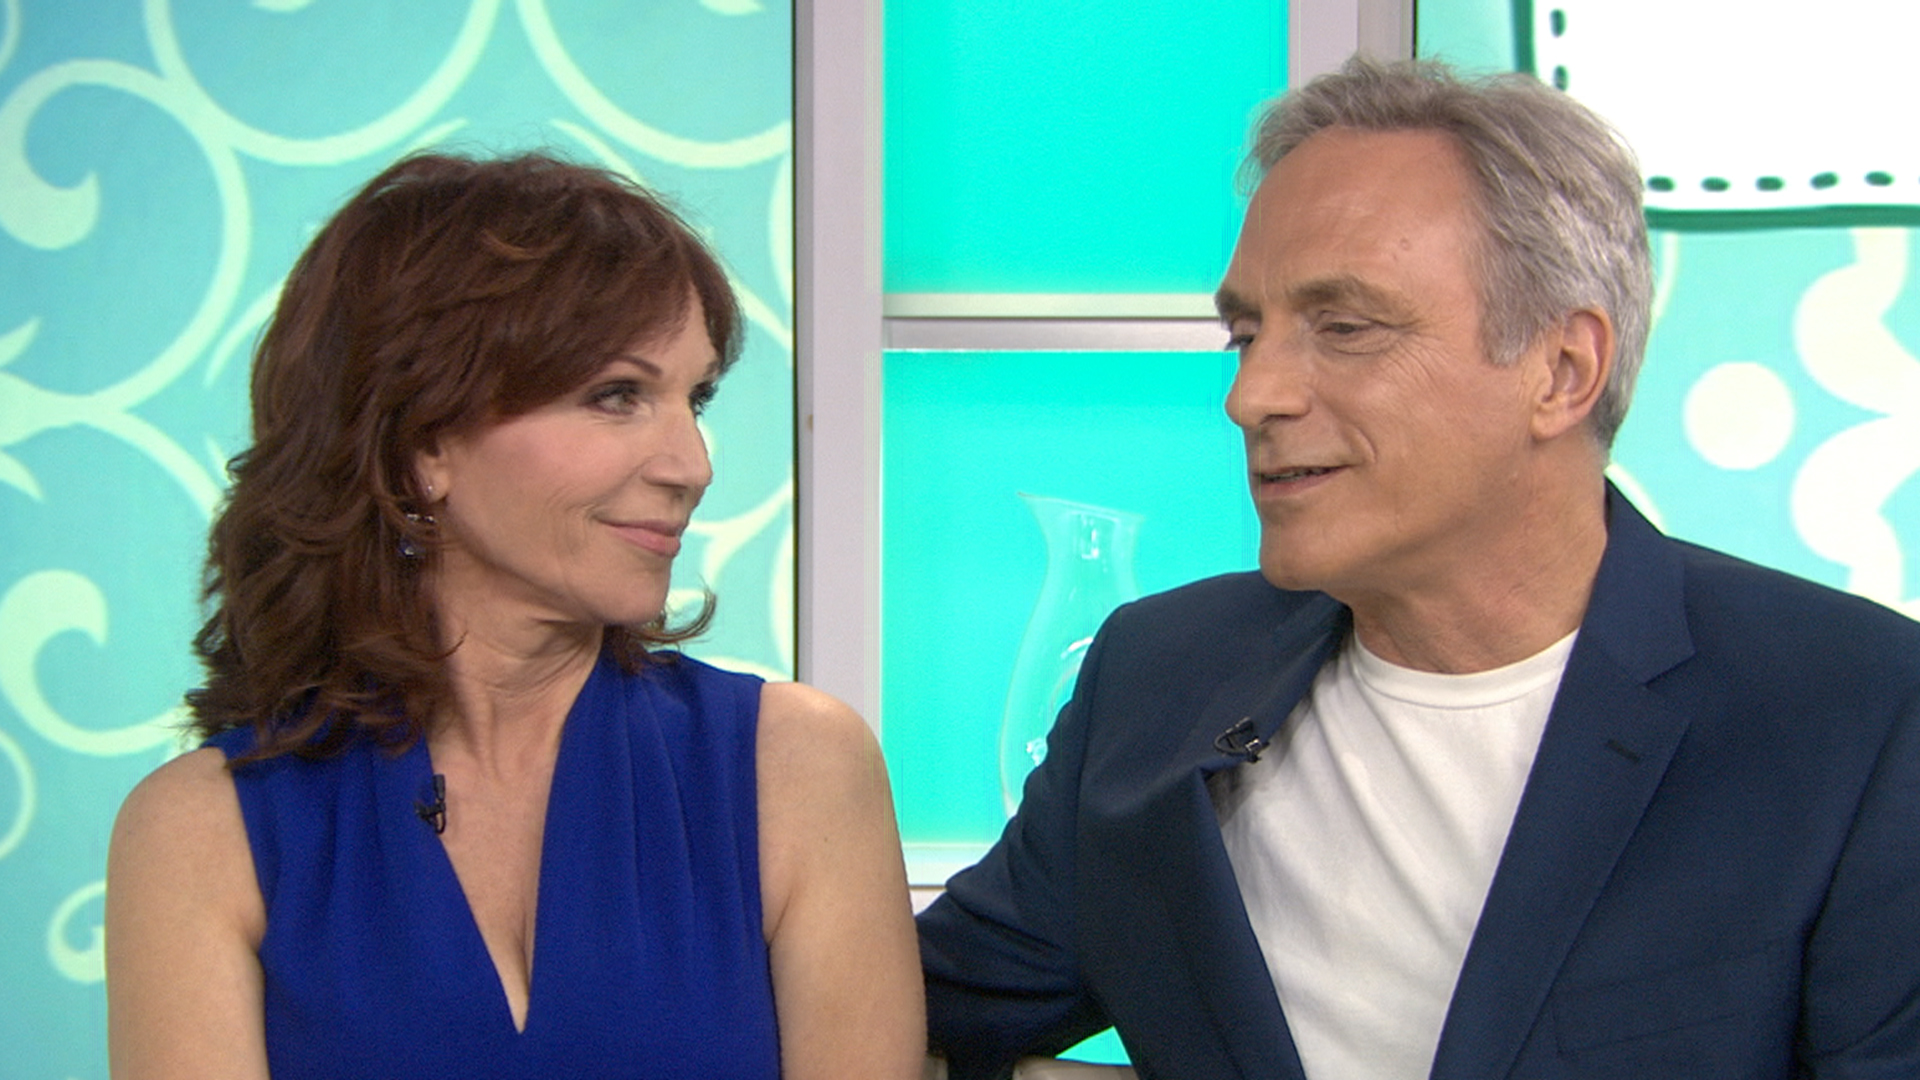 Marilu Henner And Her Husband Share How Cancer Changed Their Relationship